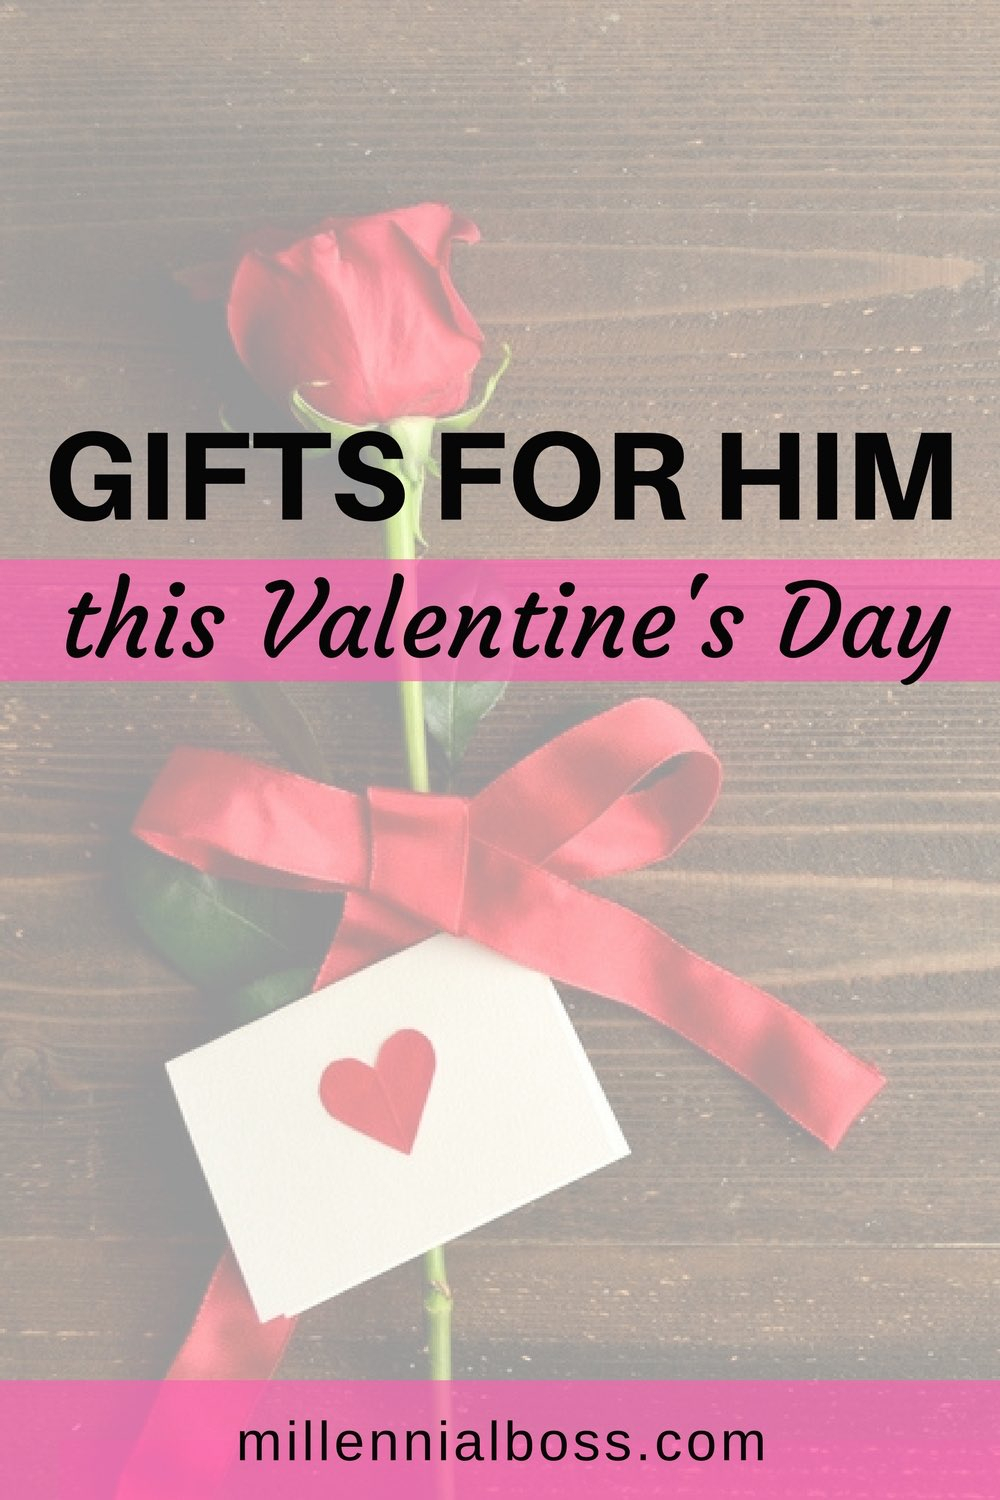 10 Wonderful Unique Ideas For Valentines Day For Him top 25 valentines day gifts for him millennial boss 2 2020